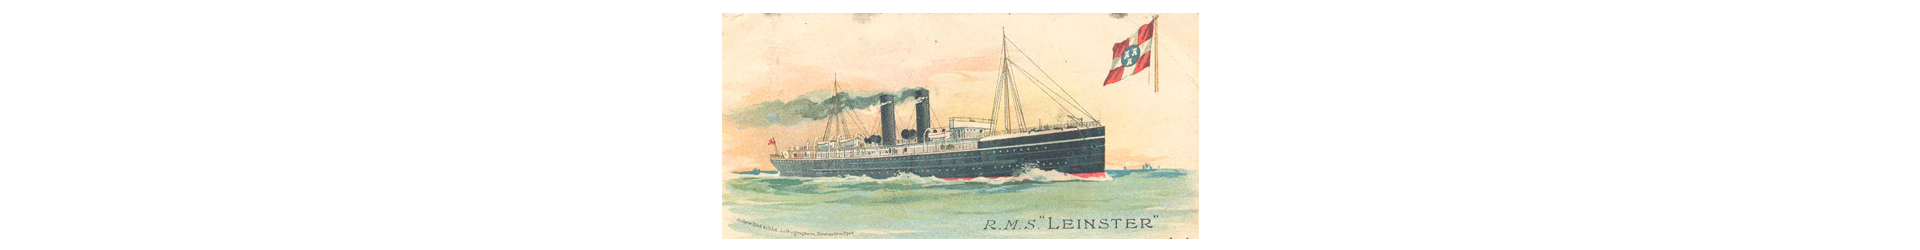 Lecture: The sinking of the RMS Leinster